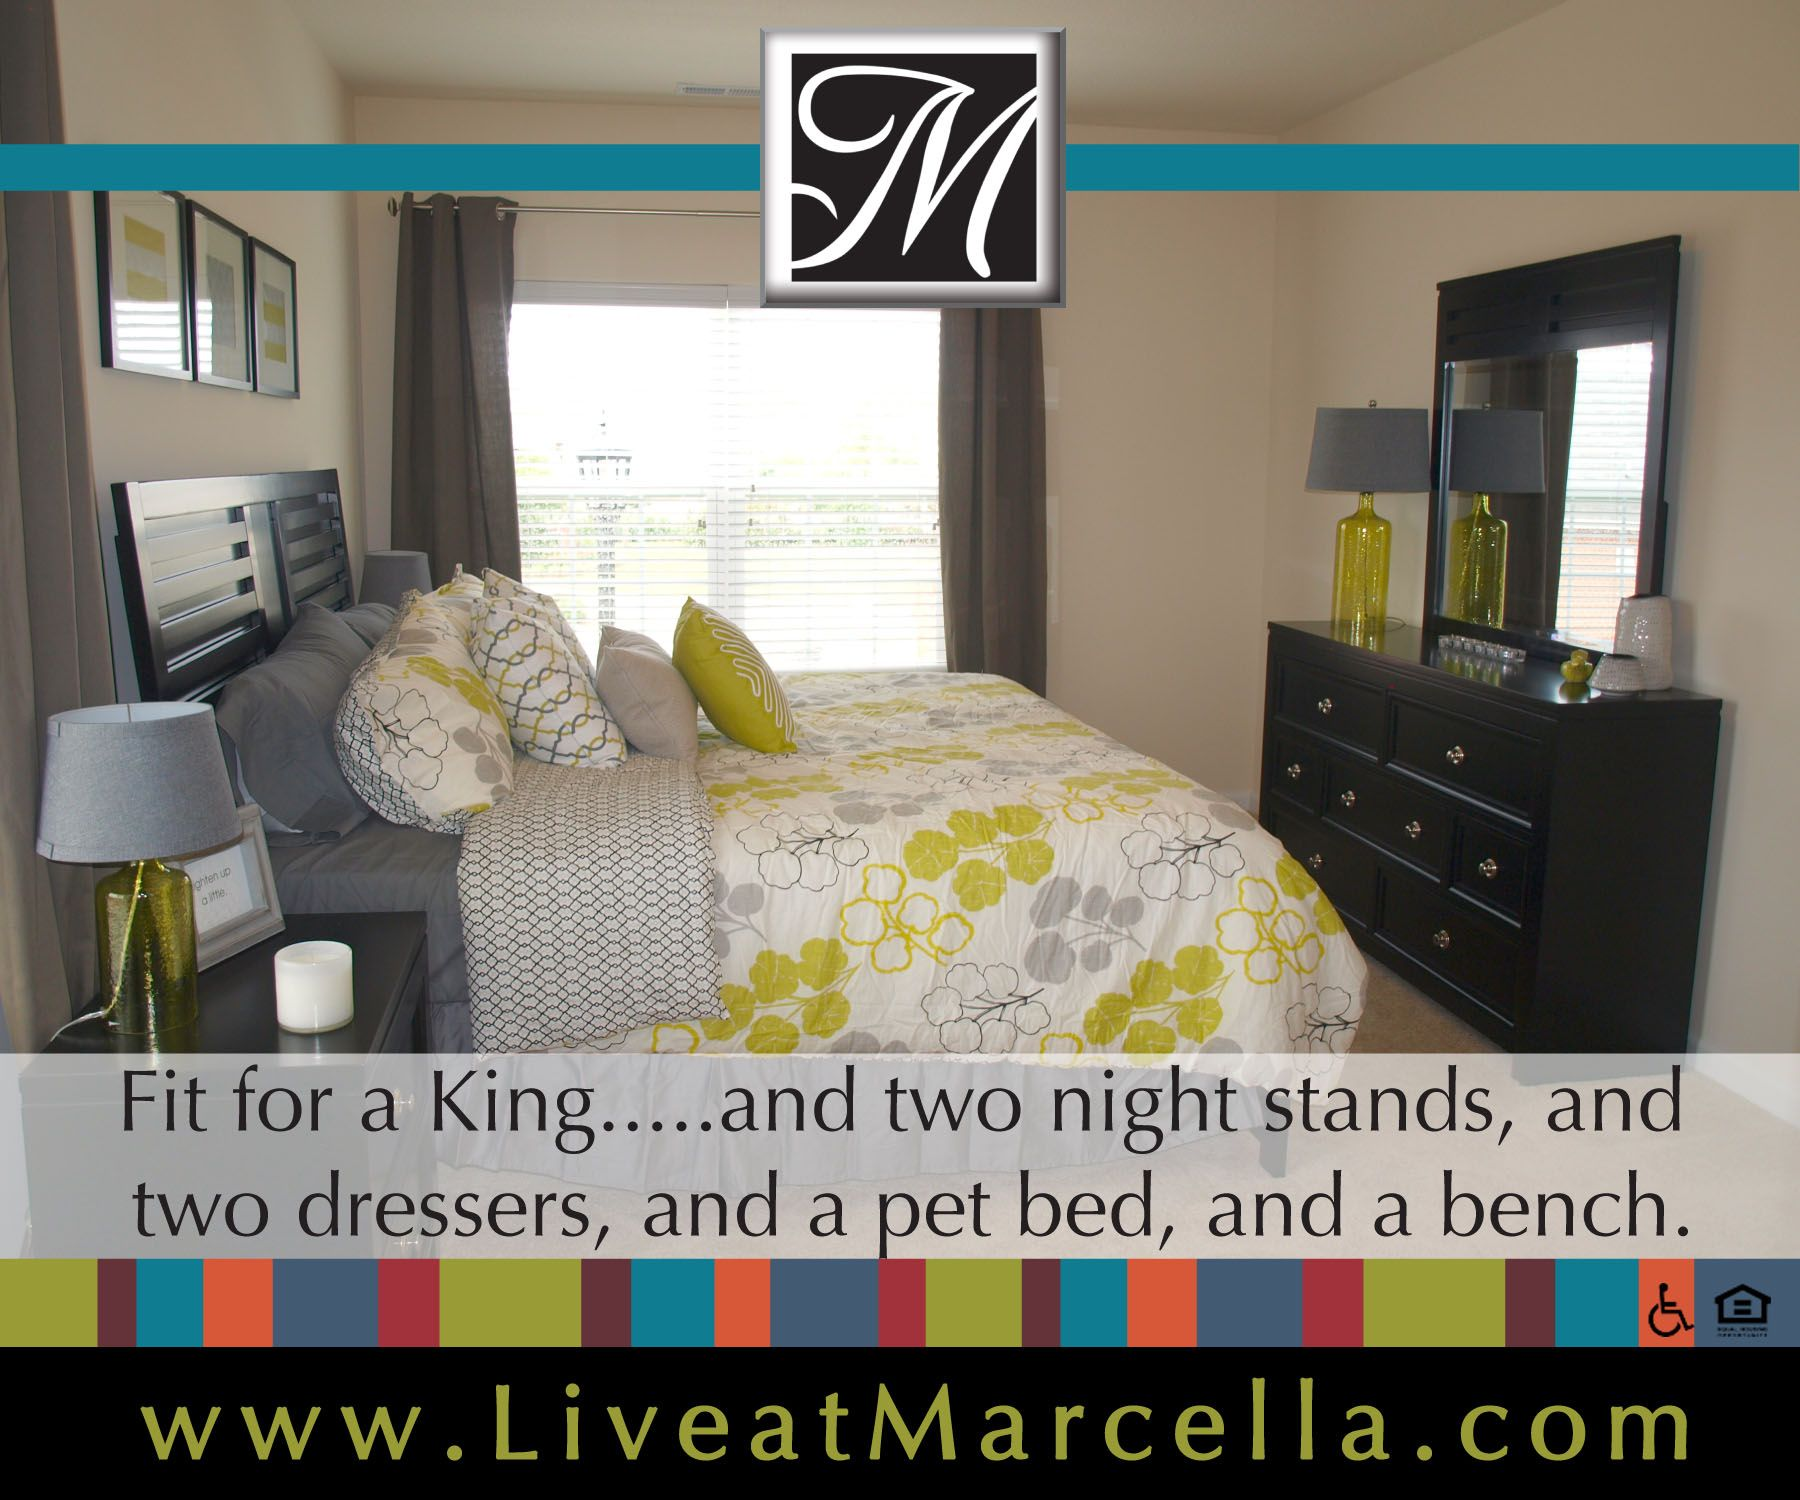 Town Center Apartments: Pin By Marcella At Town Center On Marcella At Town Center